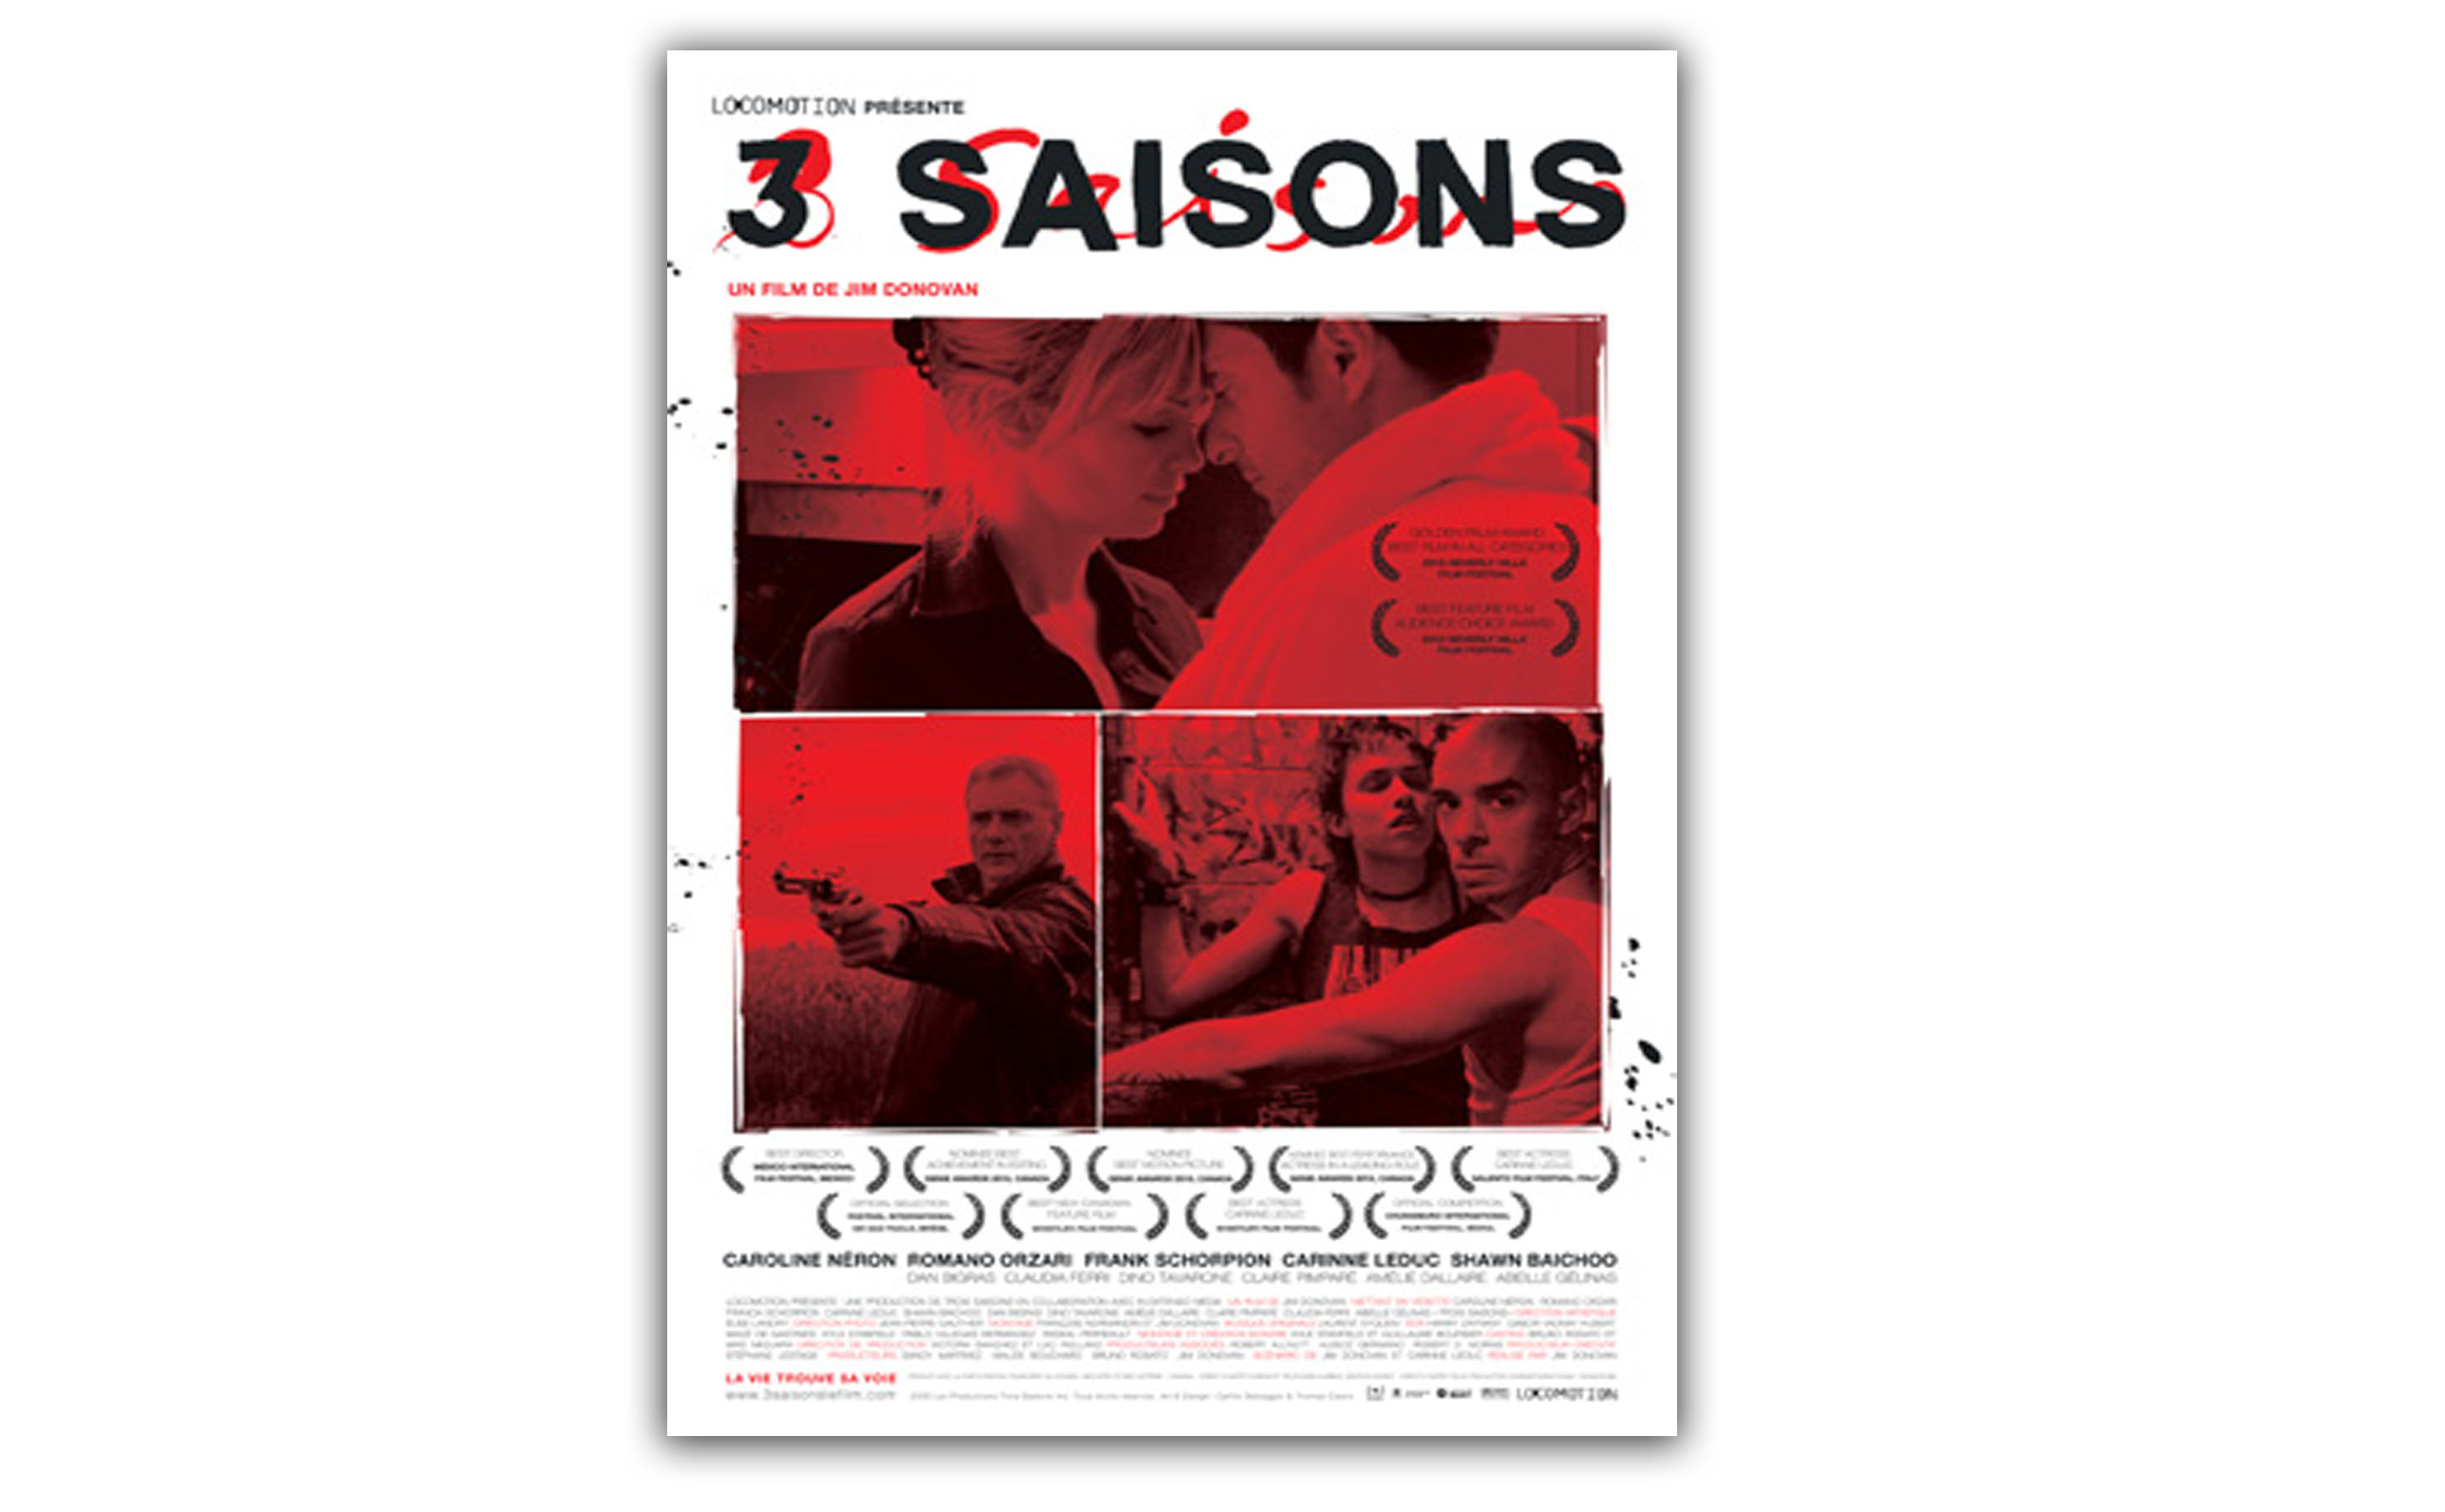 3 Saisons (3 Seasons)